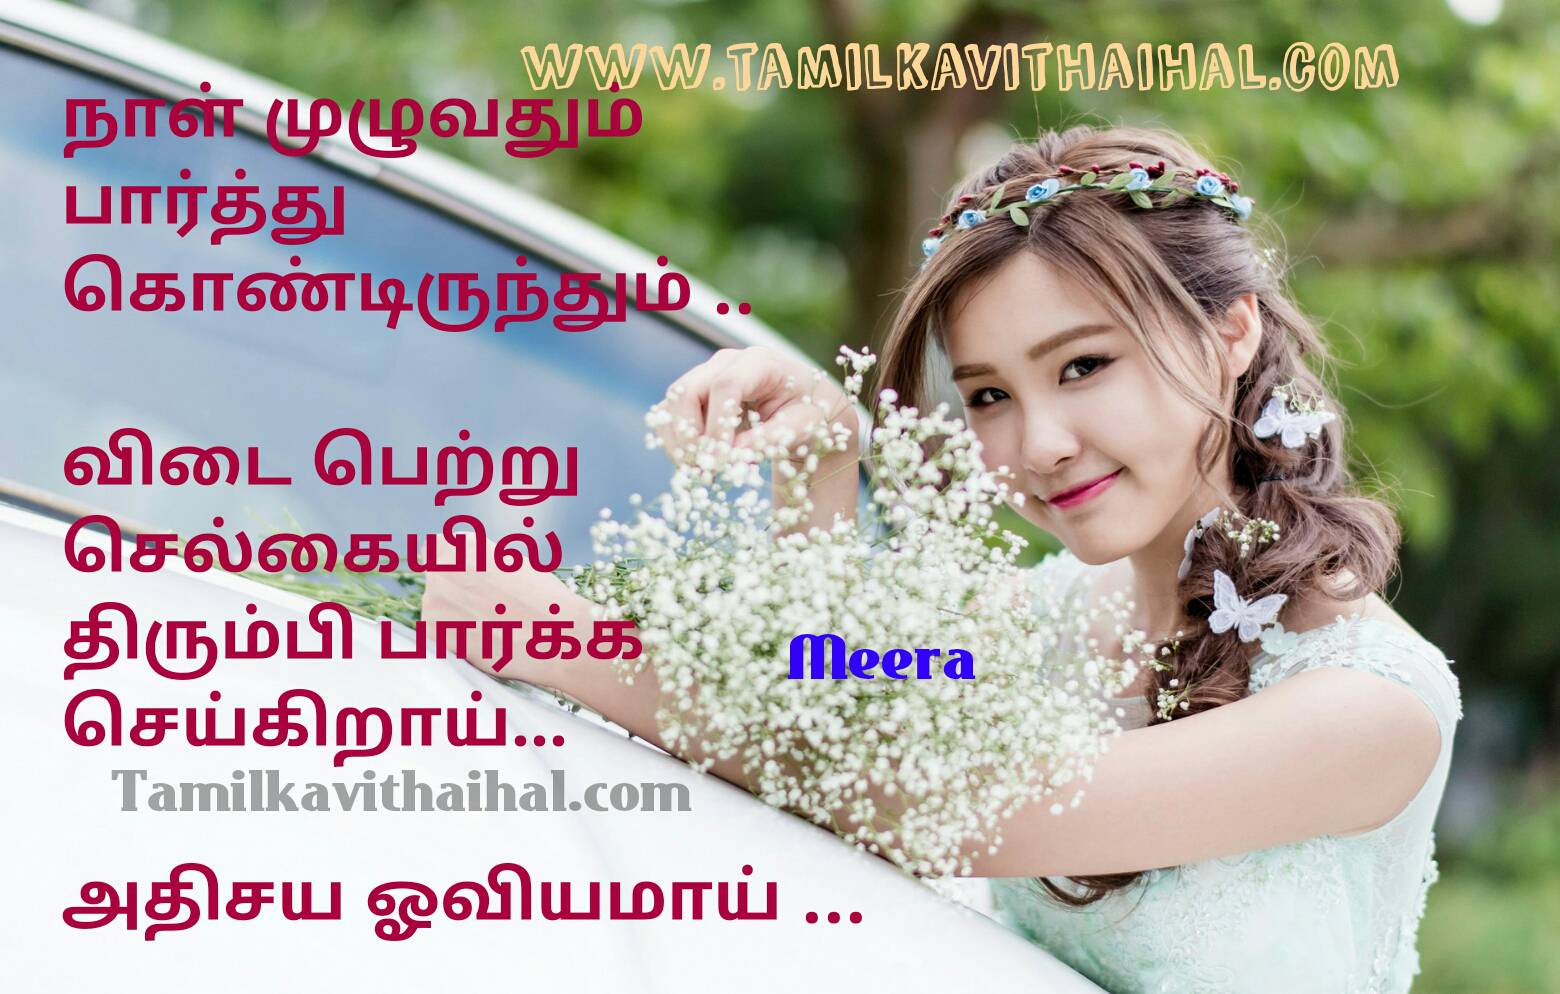 Cute New Love Tamil Feel Romance Boy Feel Oviyam Painting Girl Meera